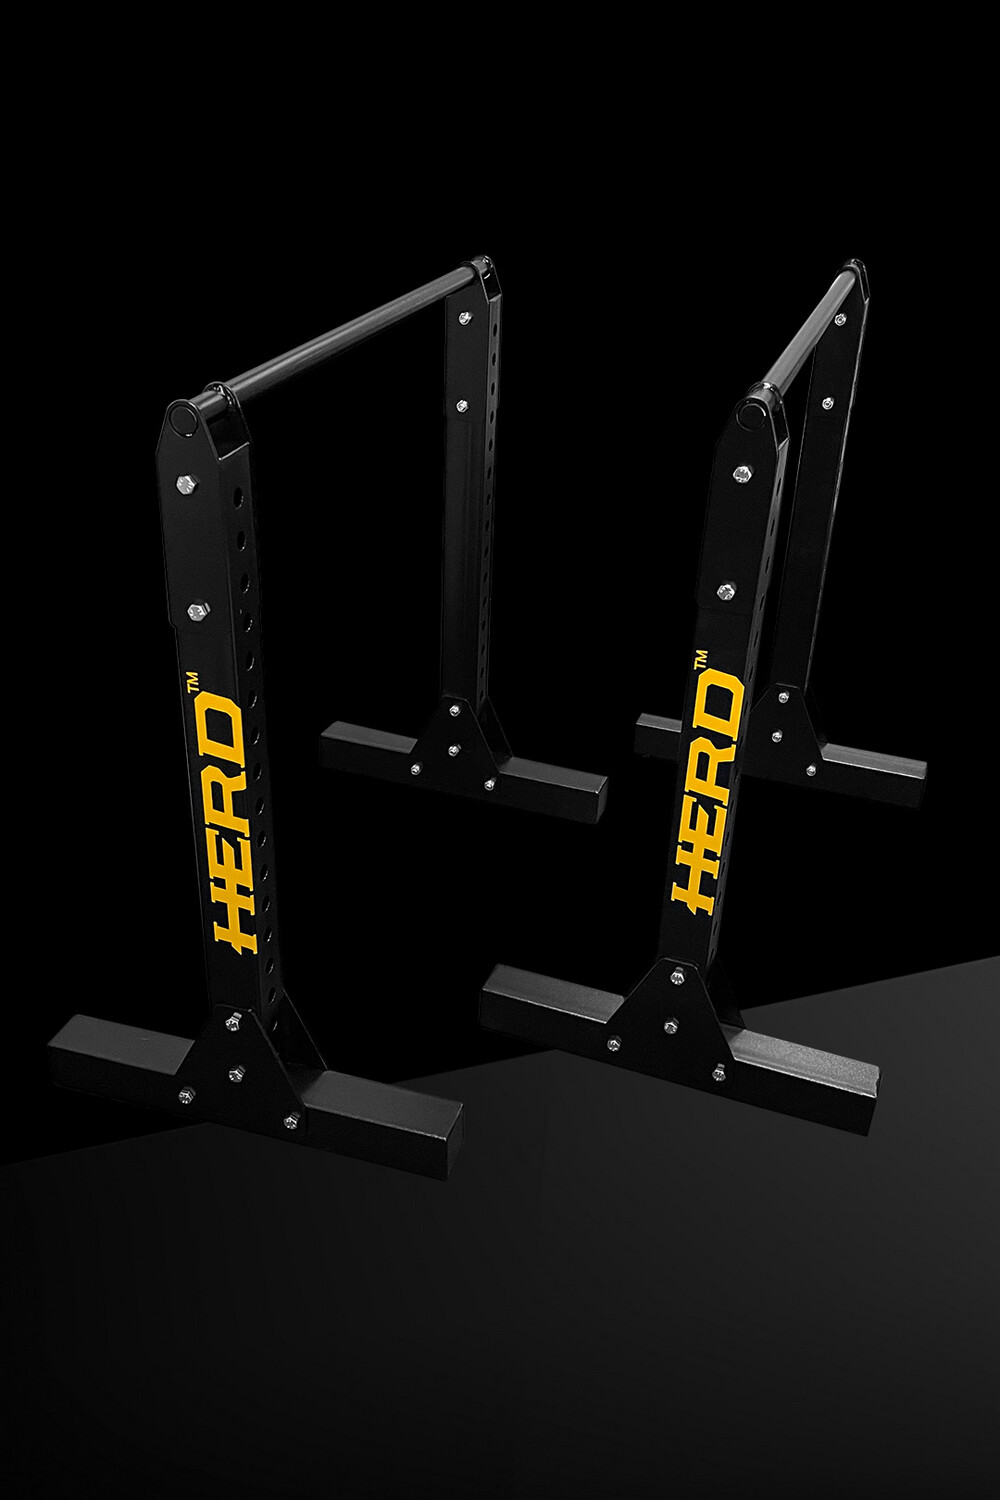 FREE STANDING PARALLETTES